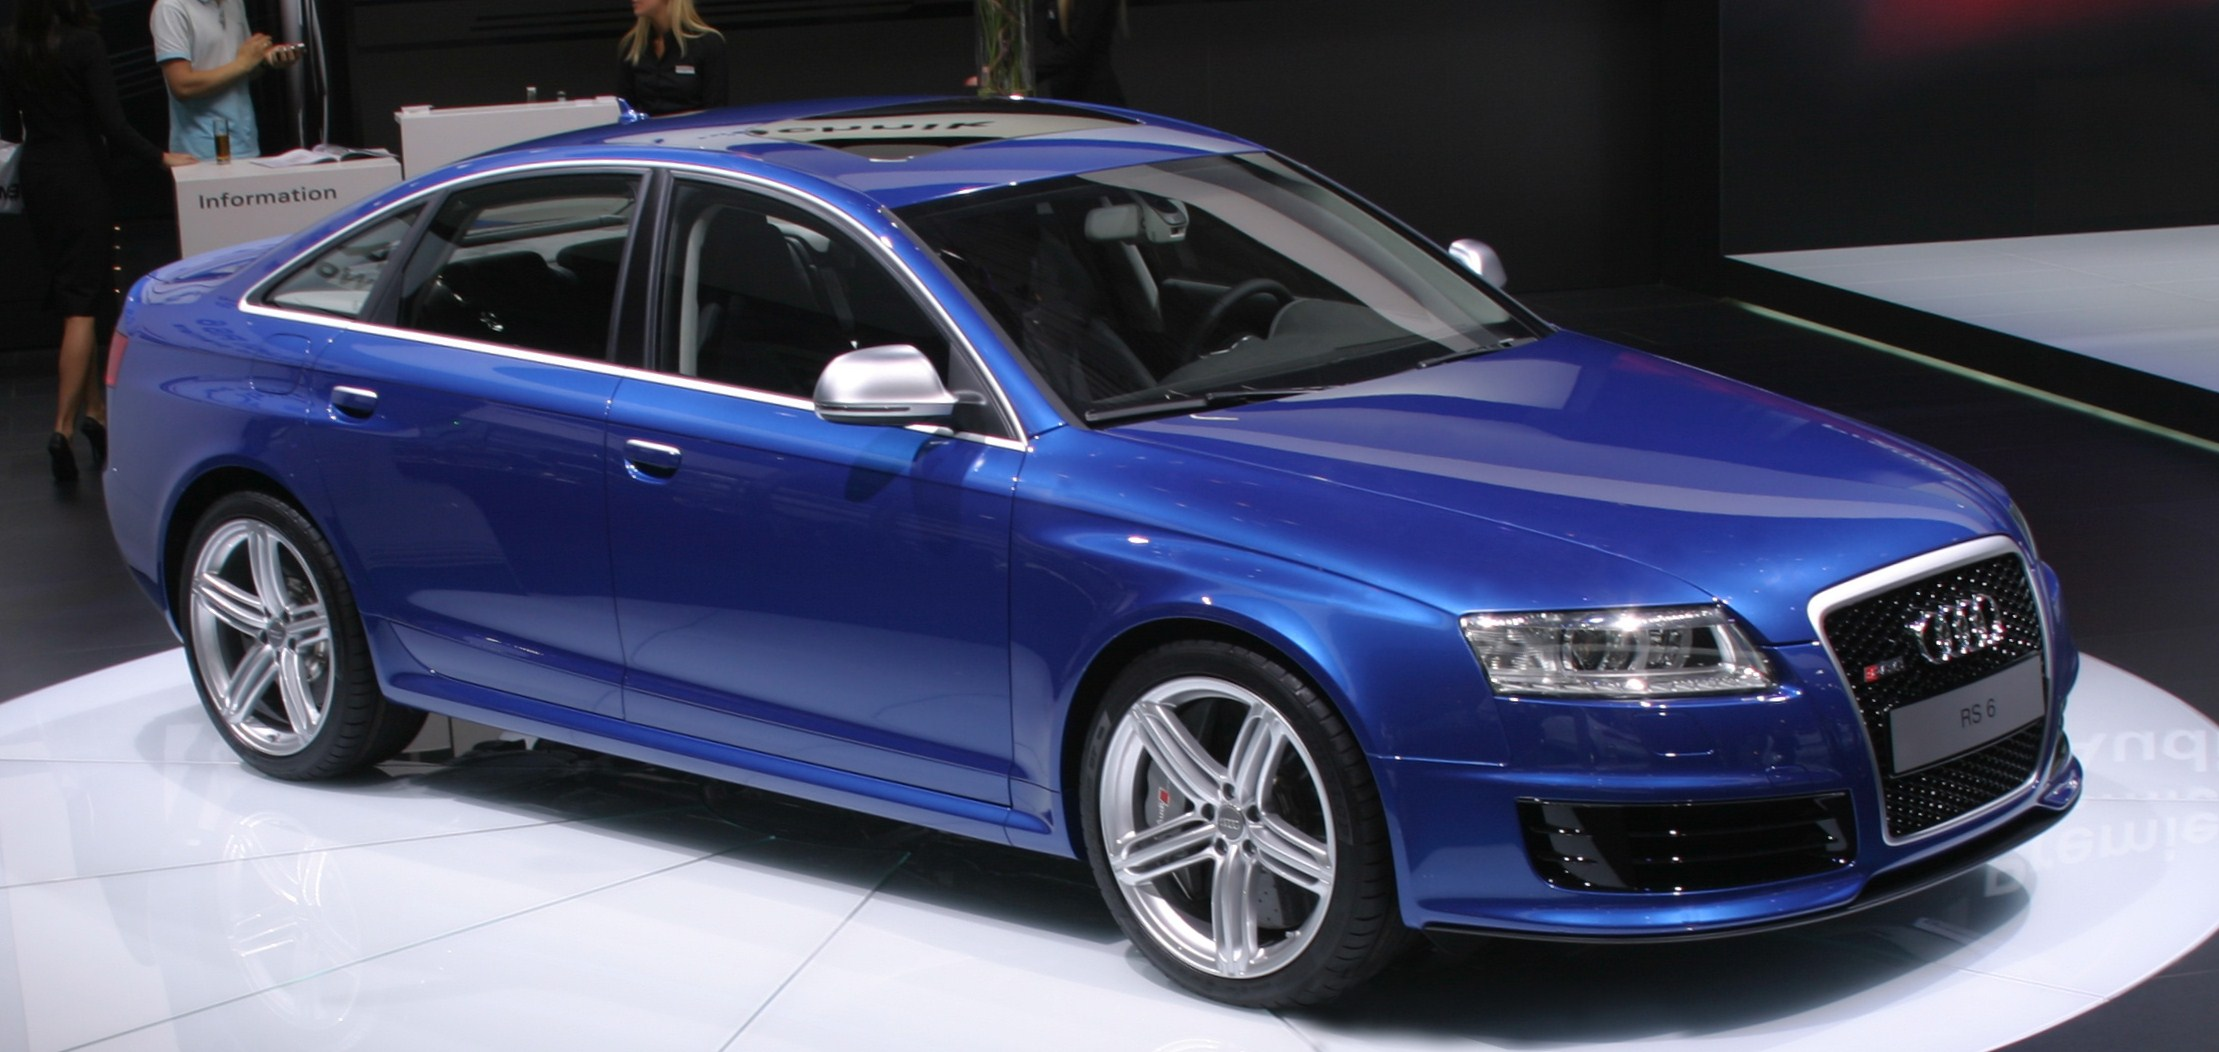 file audi rs6 sedan typ4f world premiere wikimedia commons. Black Bedroom Furniture Sets. Home Design Ideas